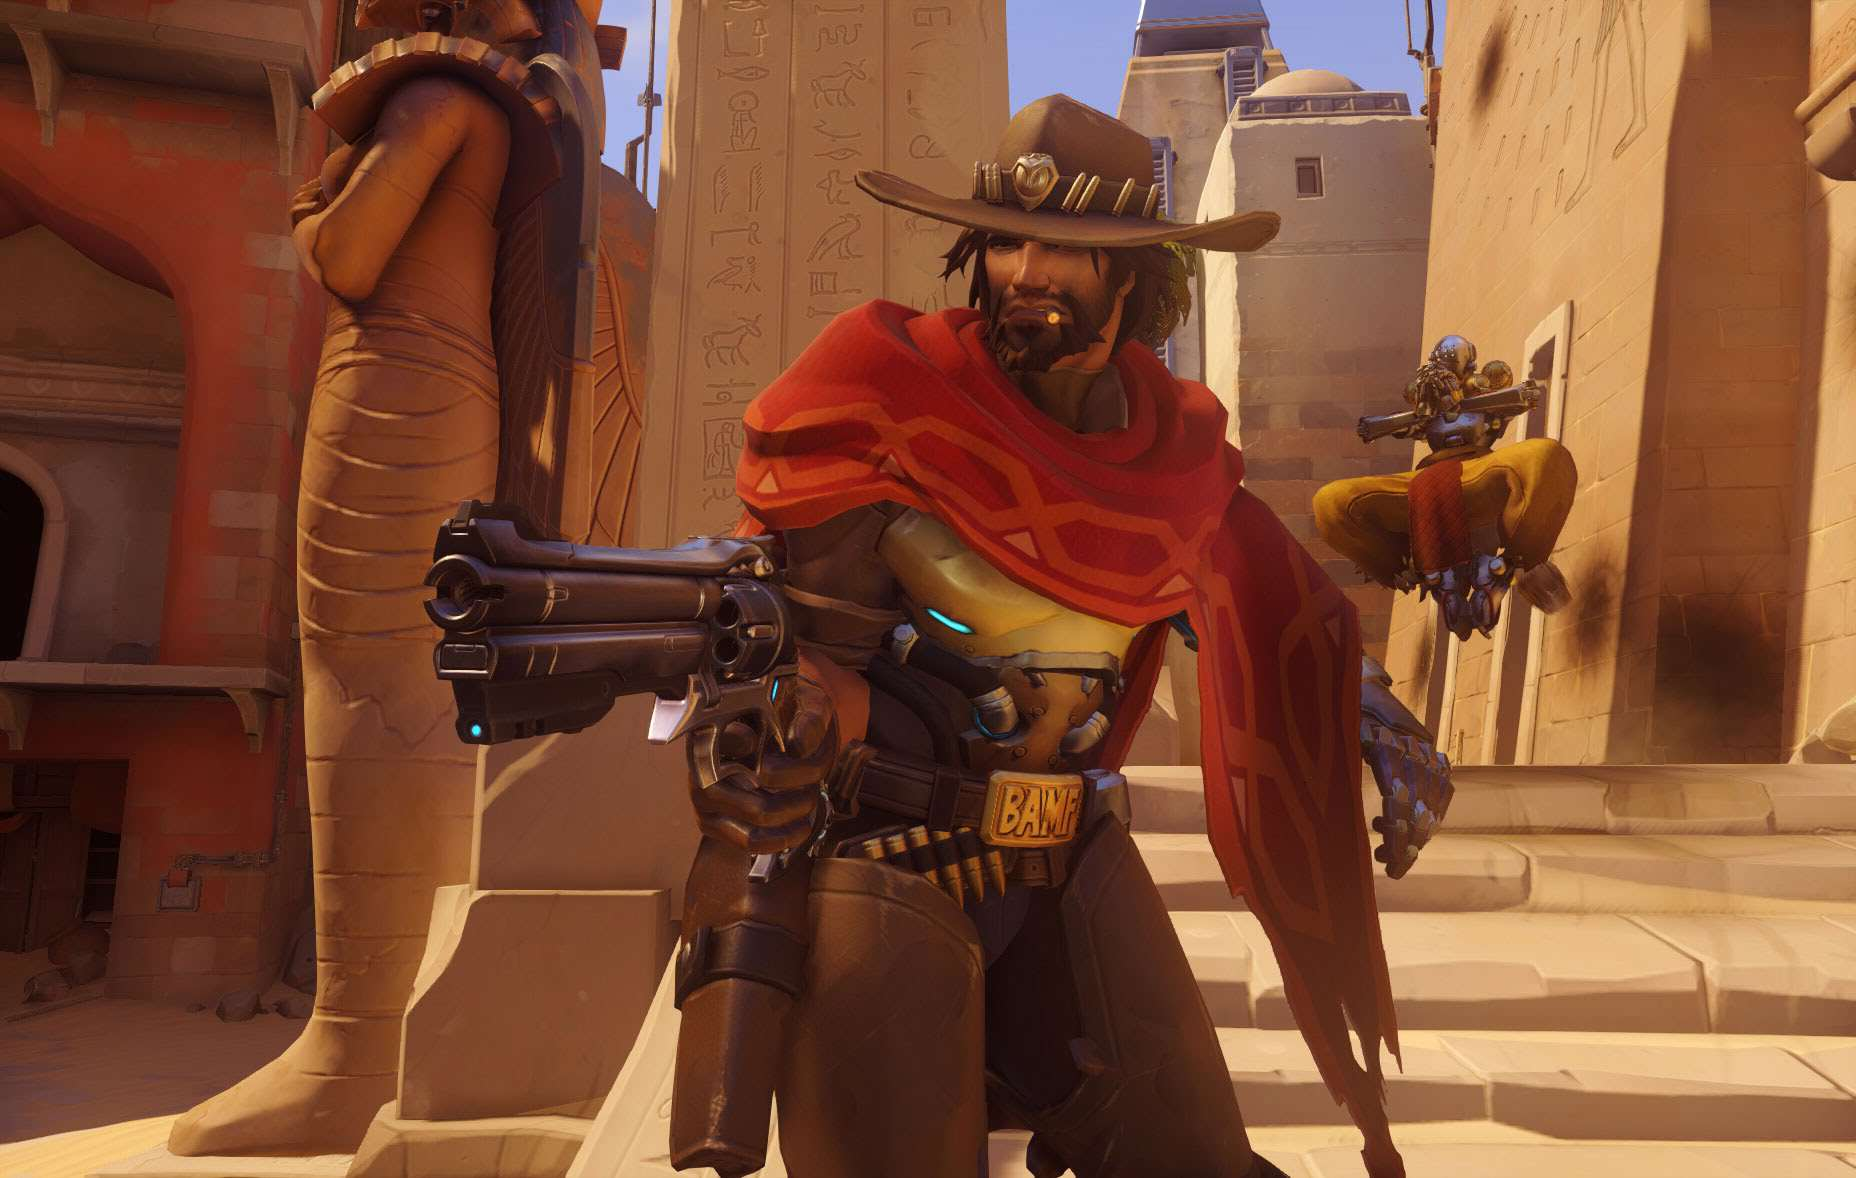 Blizzard Planning To Nerf Key Overwatch Character maxresdefault 11